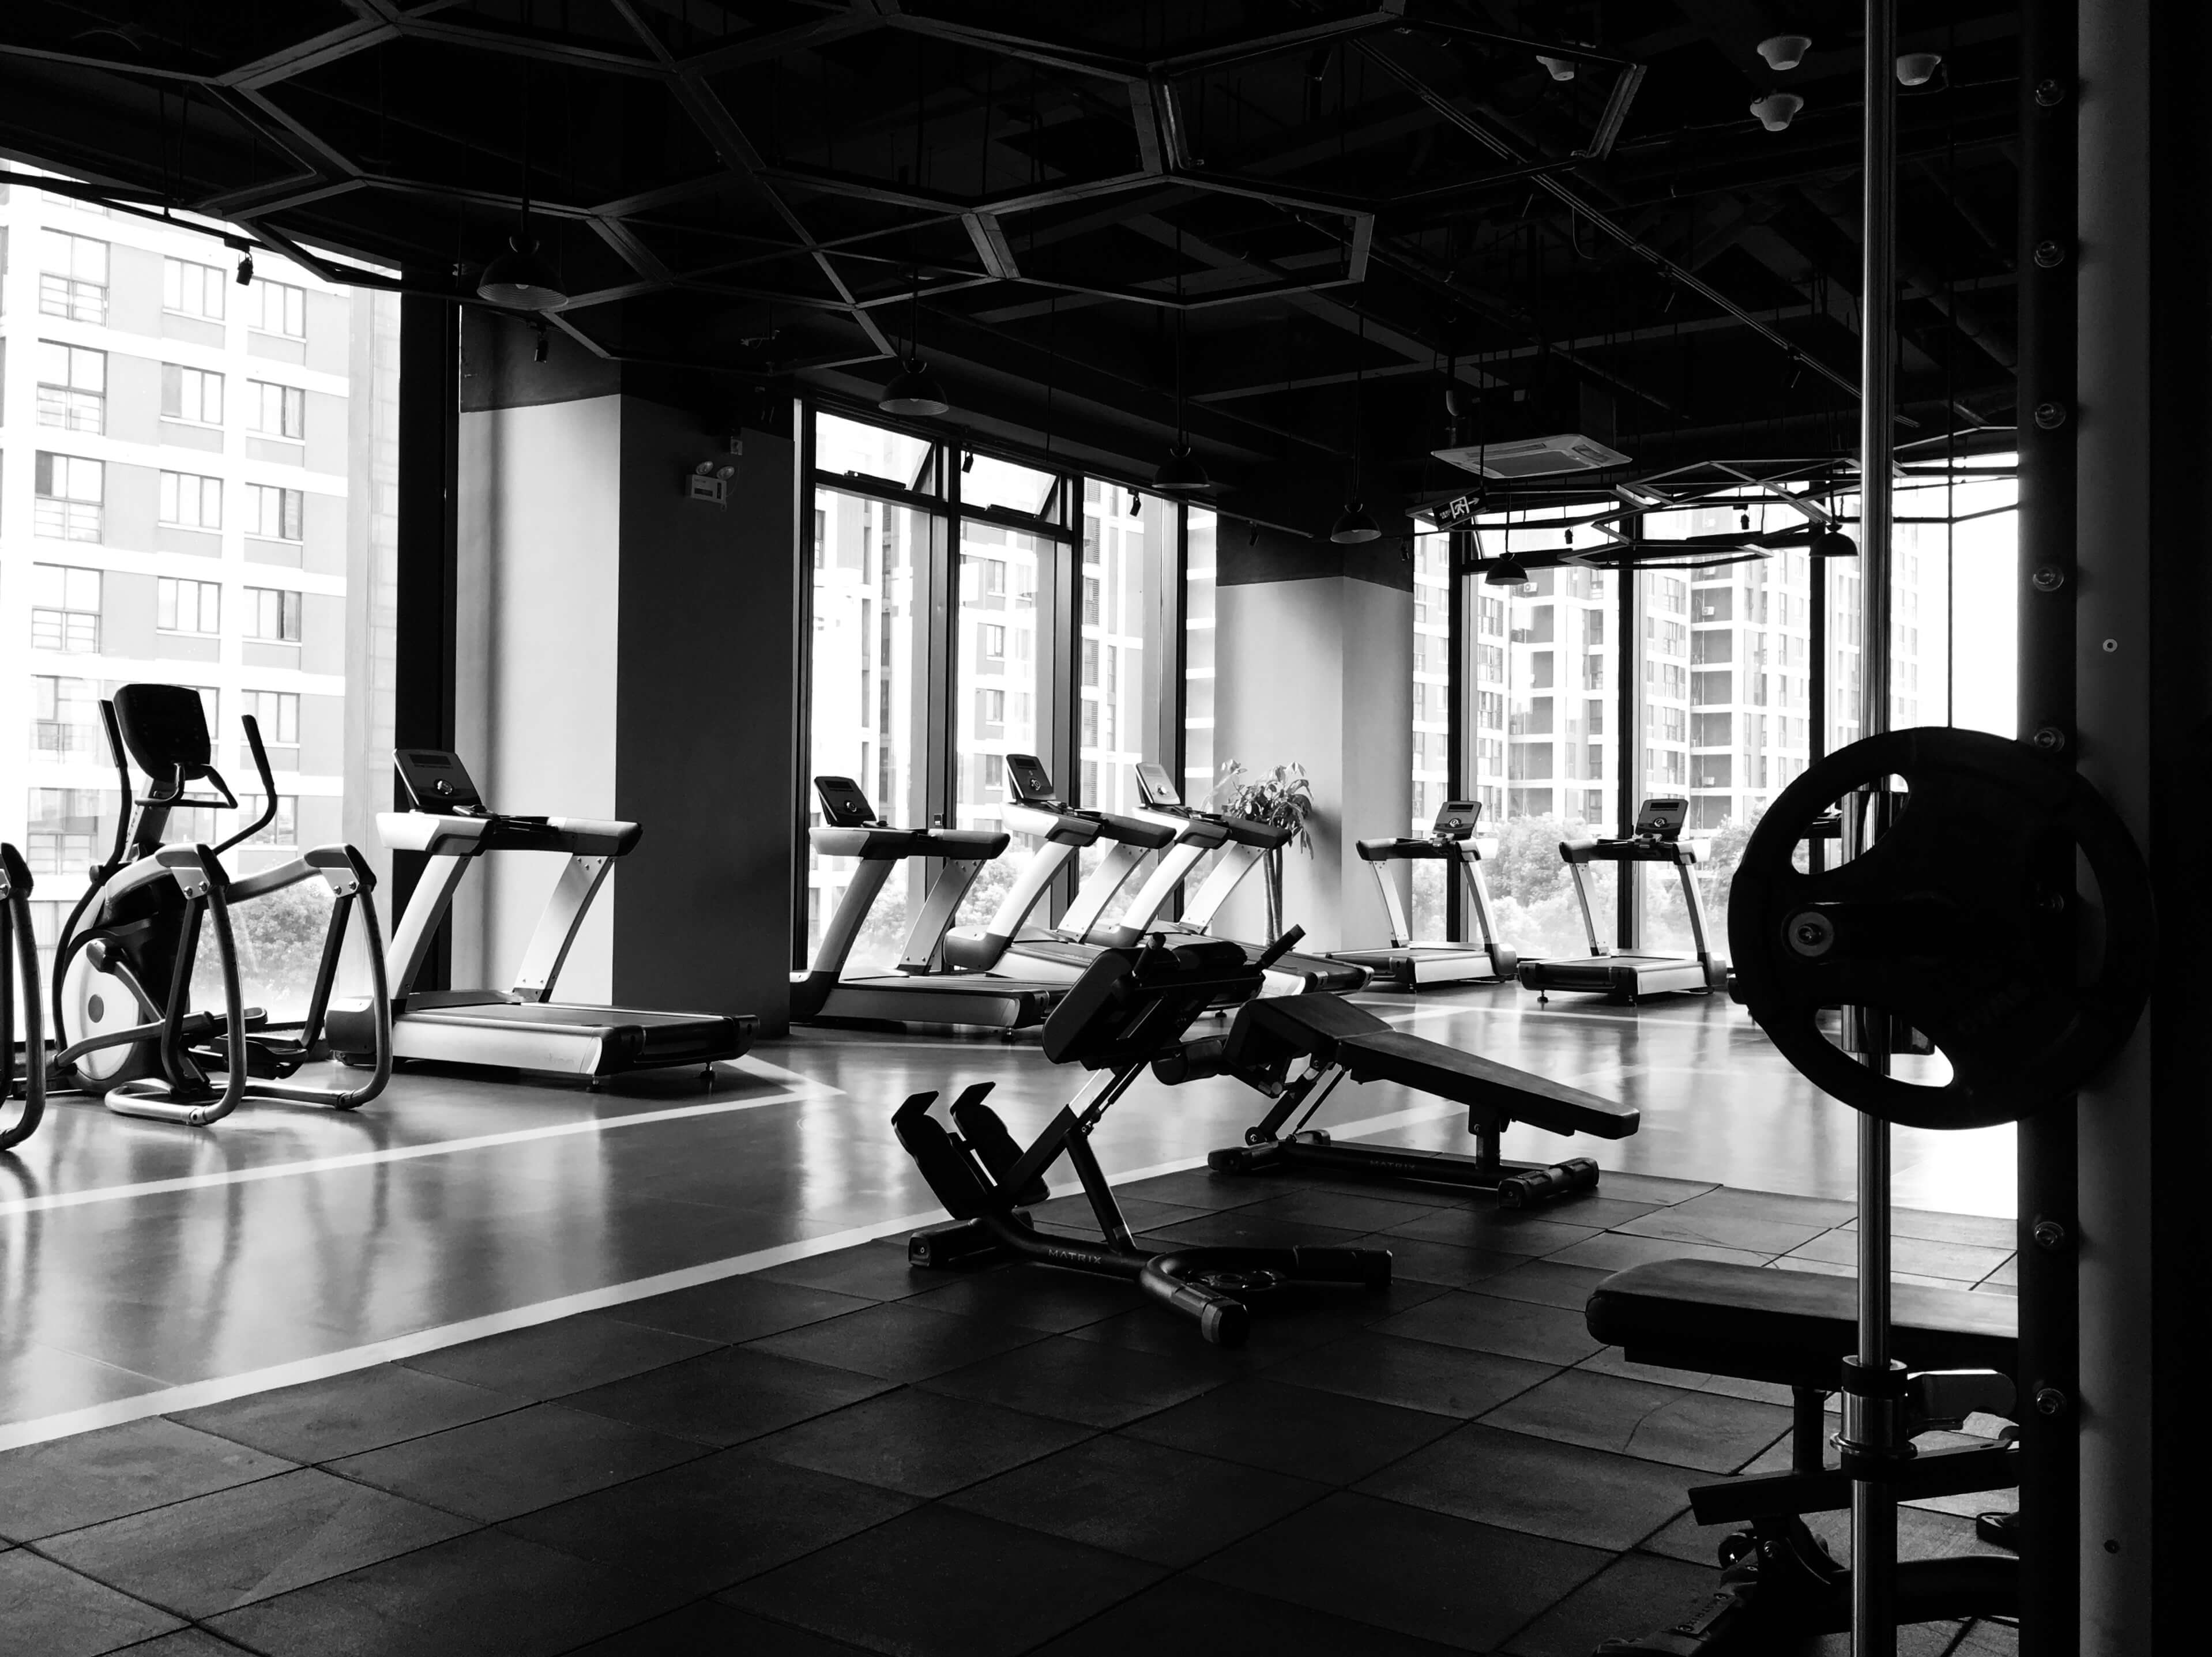 A gym with treadmills and weights machines